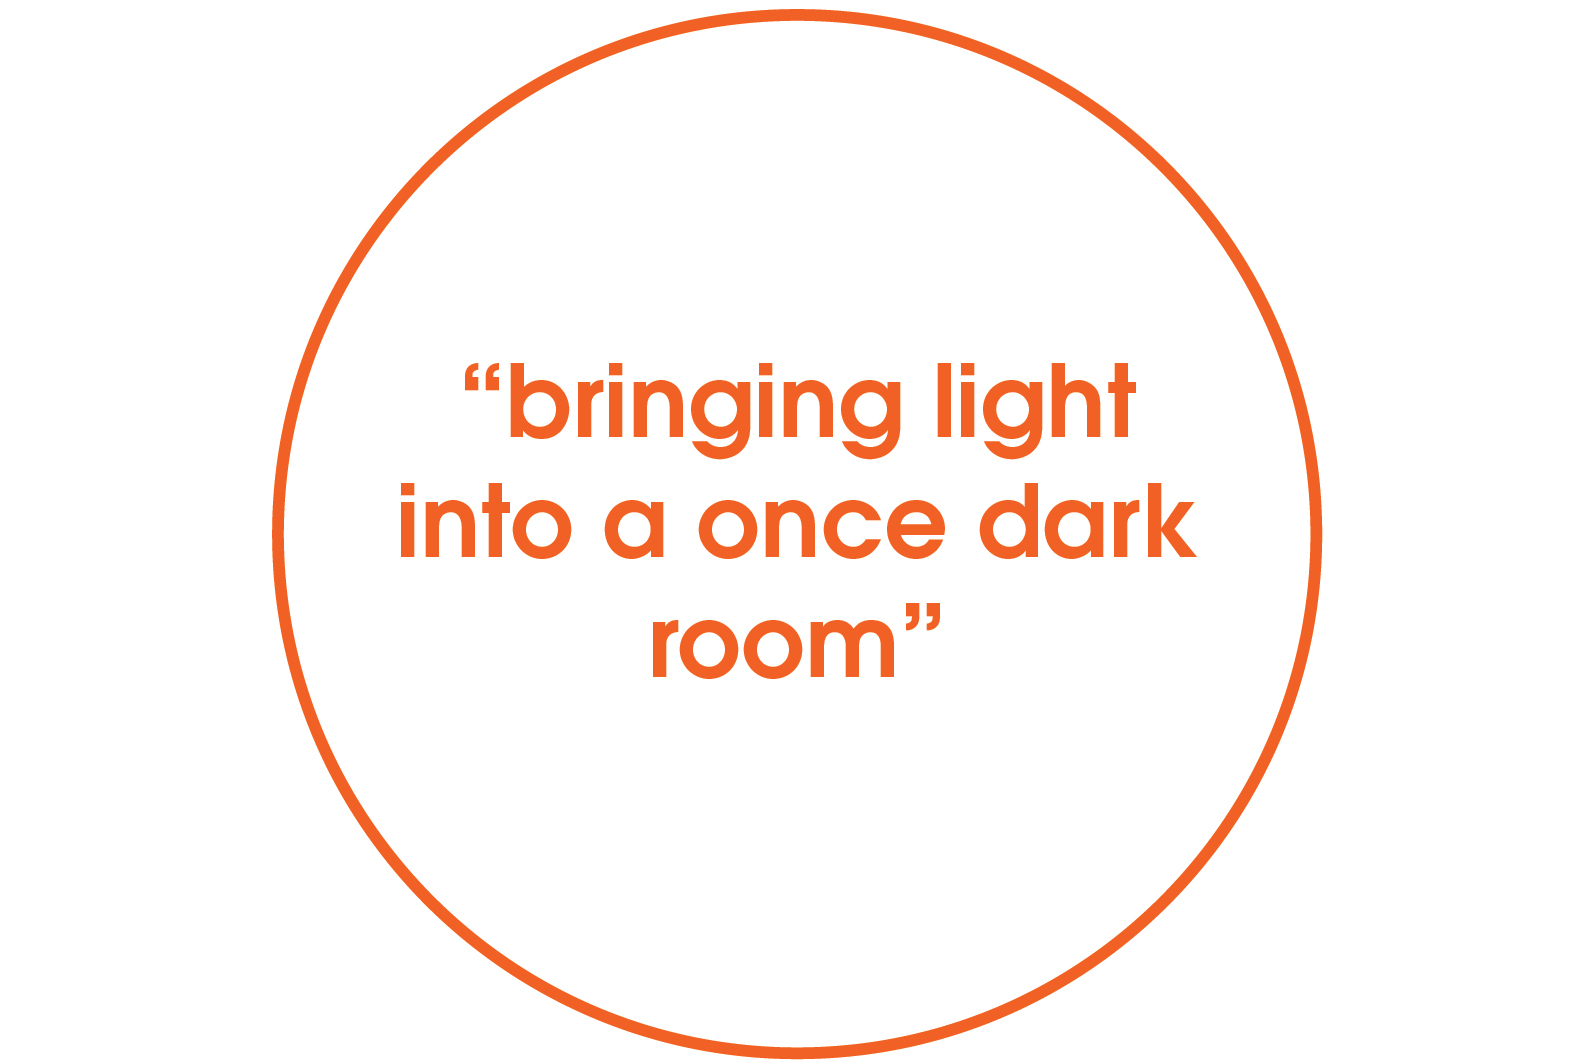 bringing light into a once dark room quote